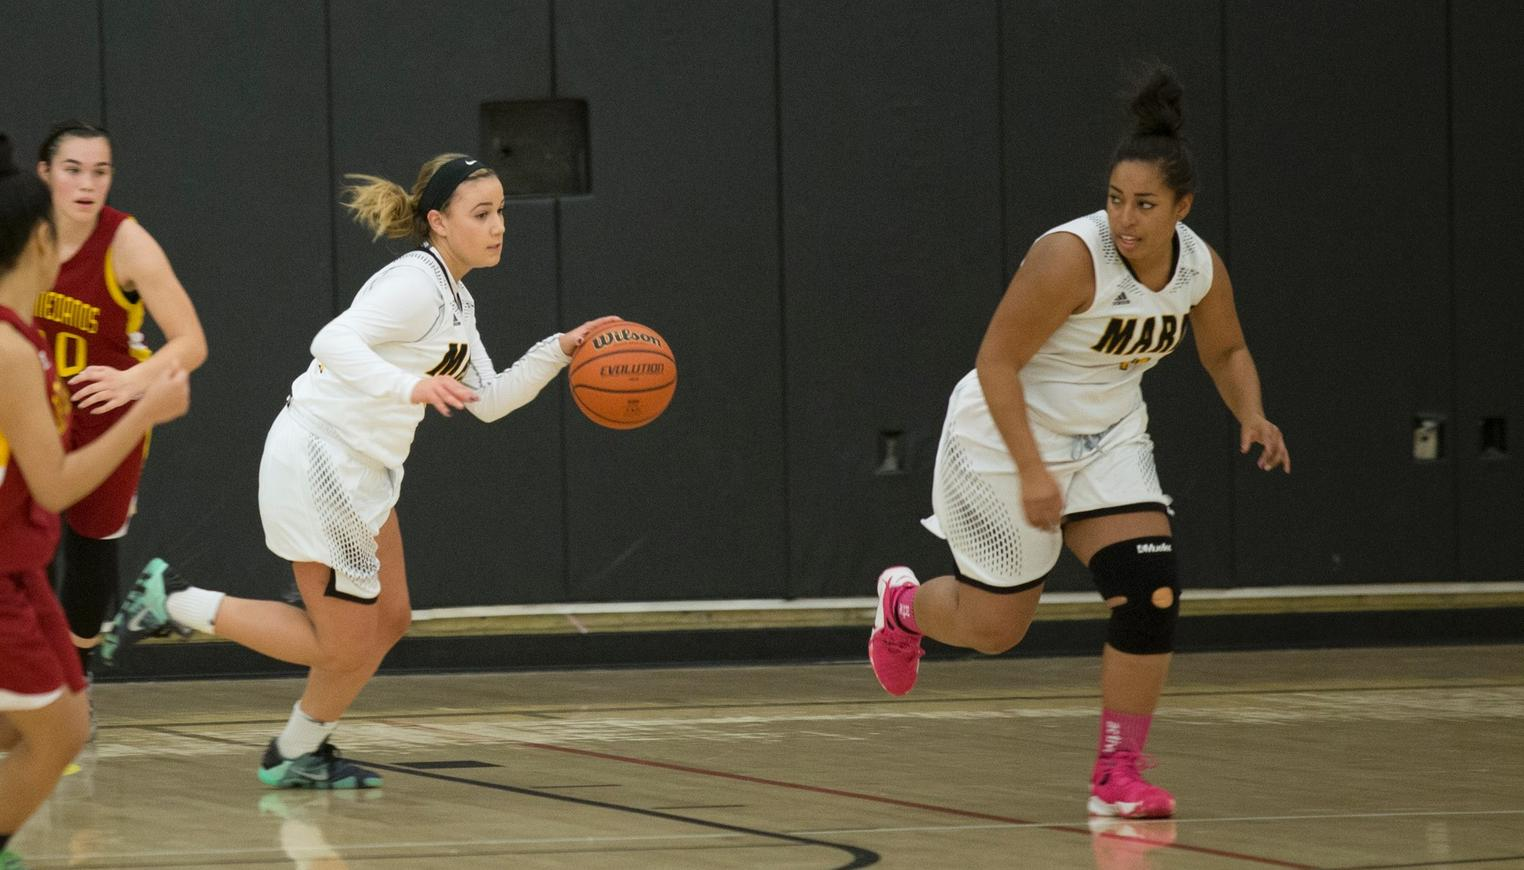 COM Women's Basketball Undone By Fouls in 77-69 Loss To Mendocino College